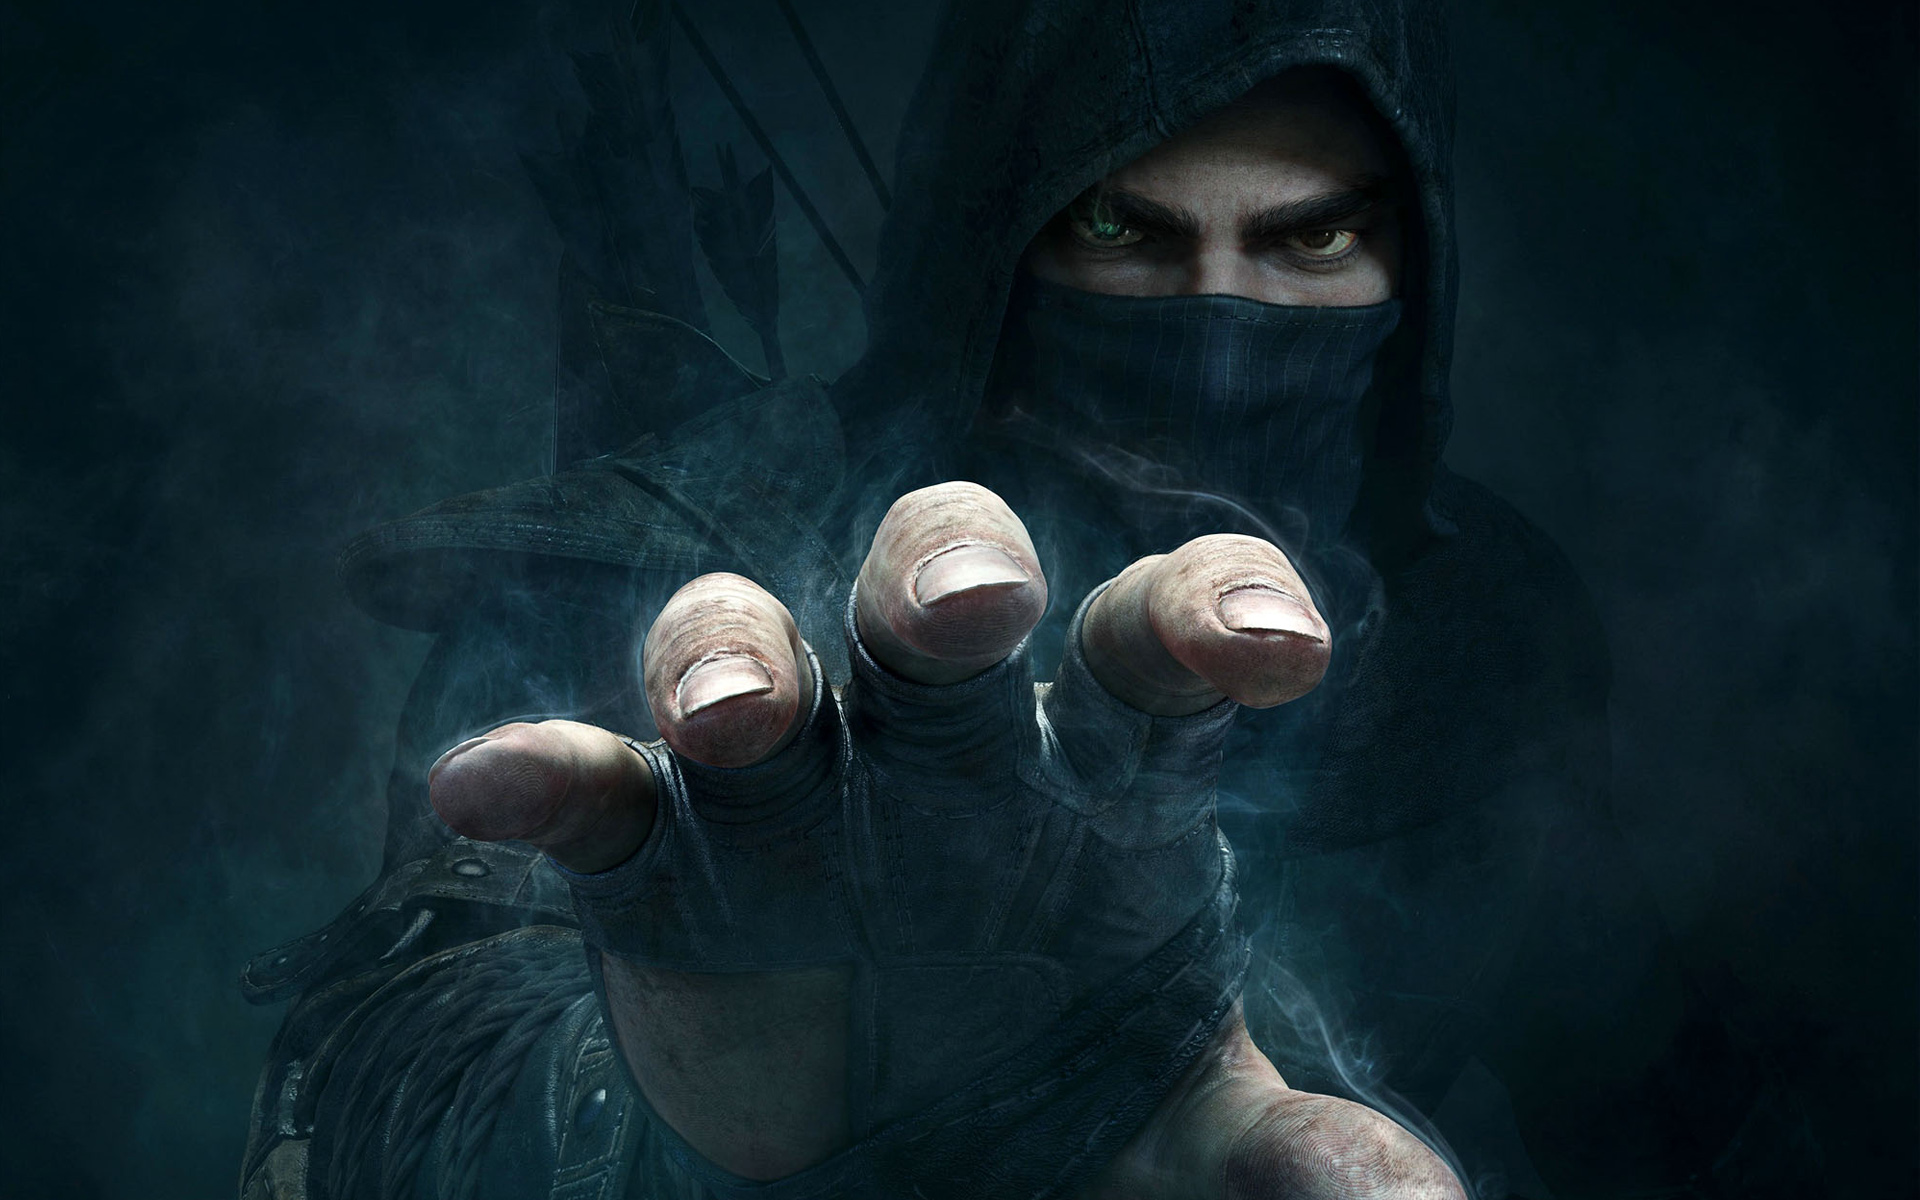 thief game wallpaper A1